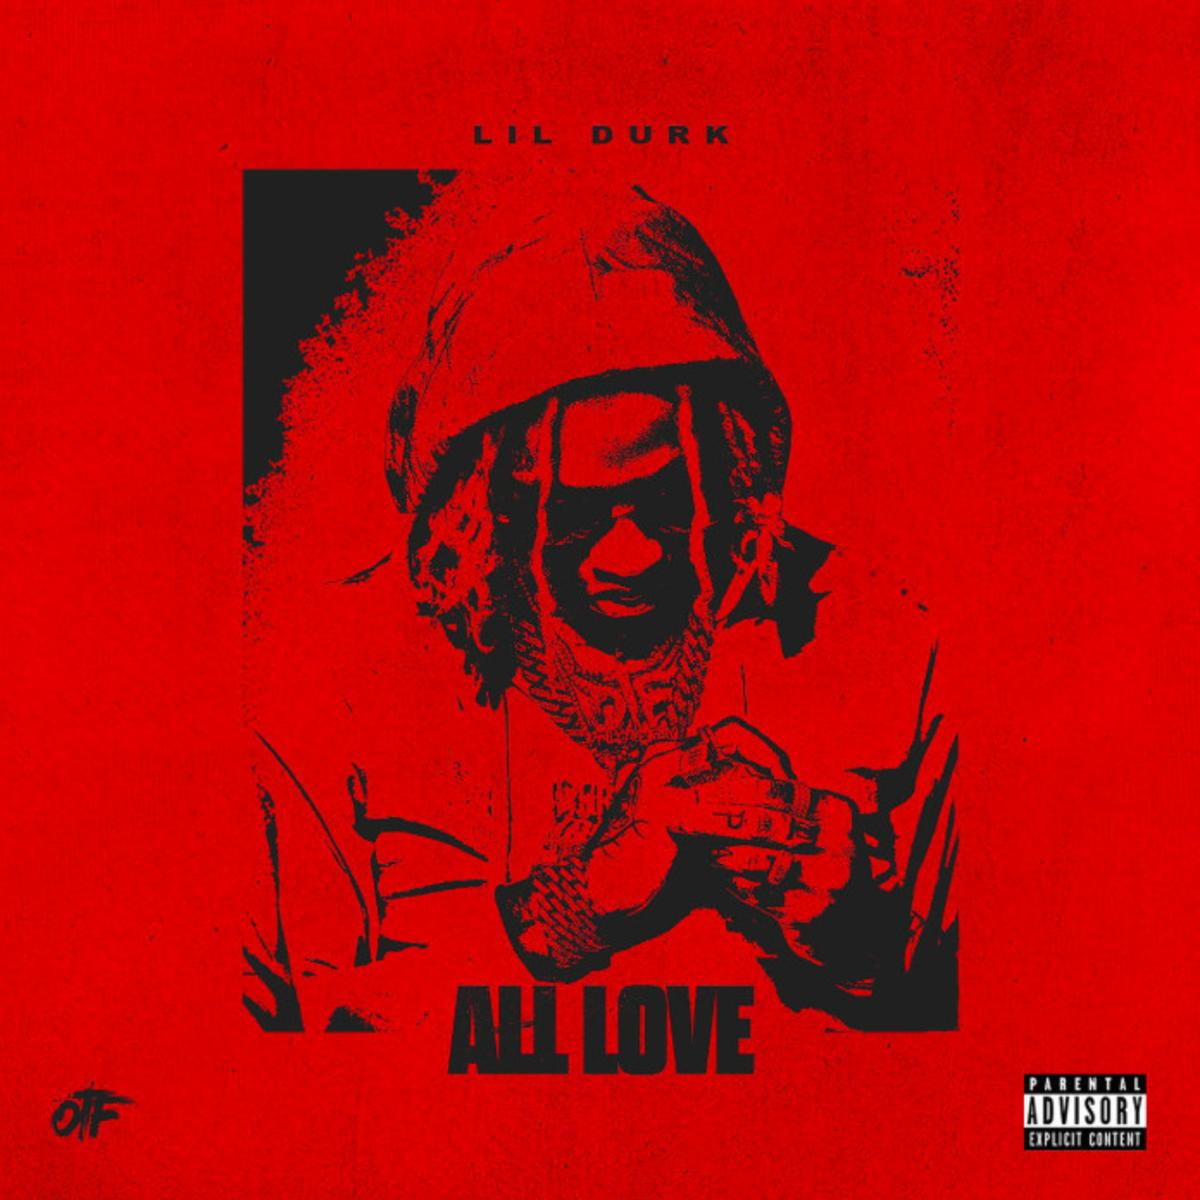 Lil Durk - All Love